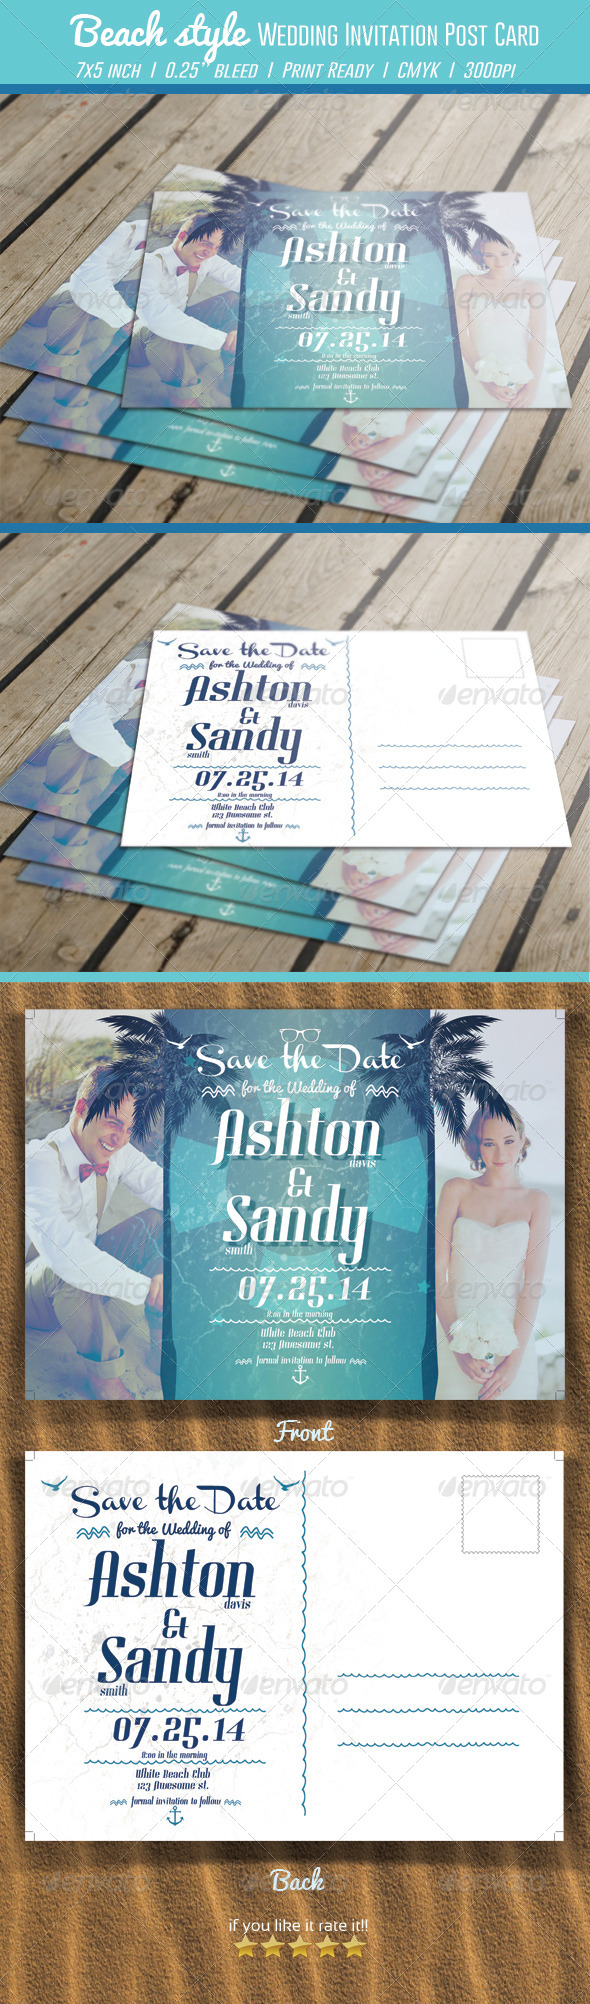 Beach Style Wedding Invitation Post Card - Weddings Cards & Invites